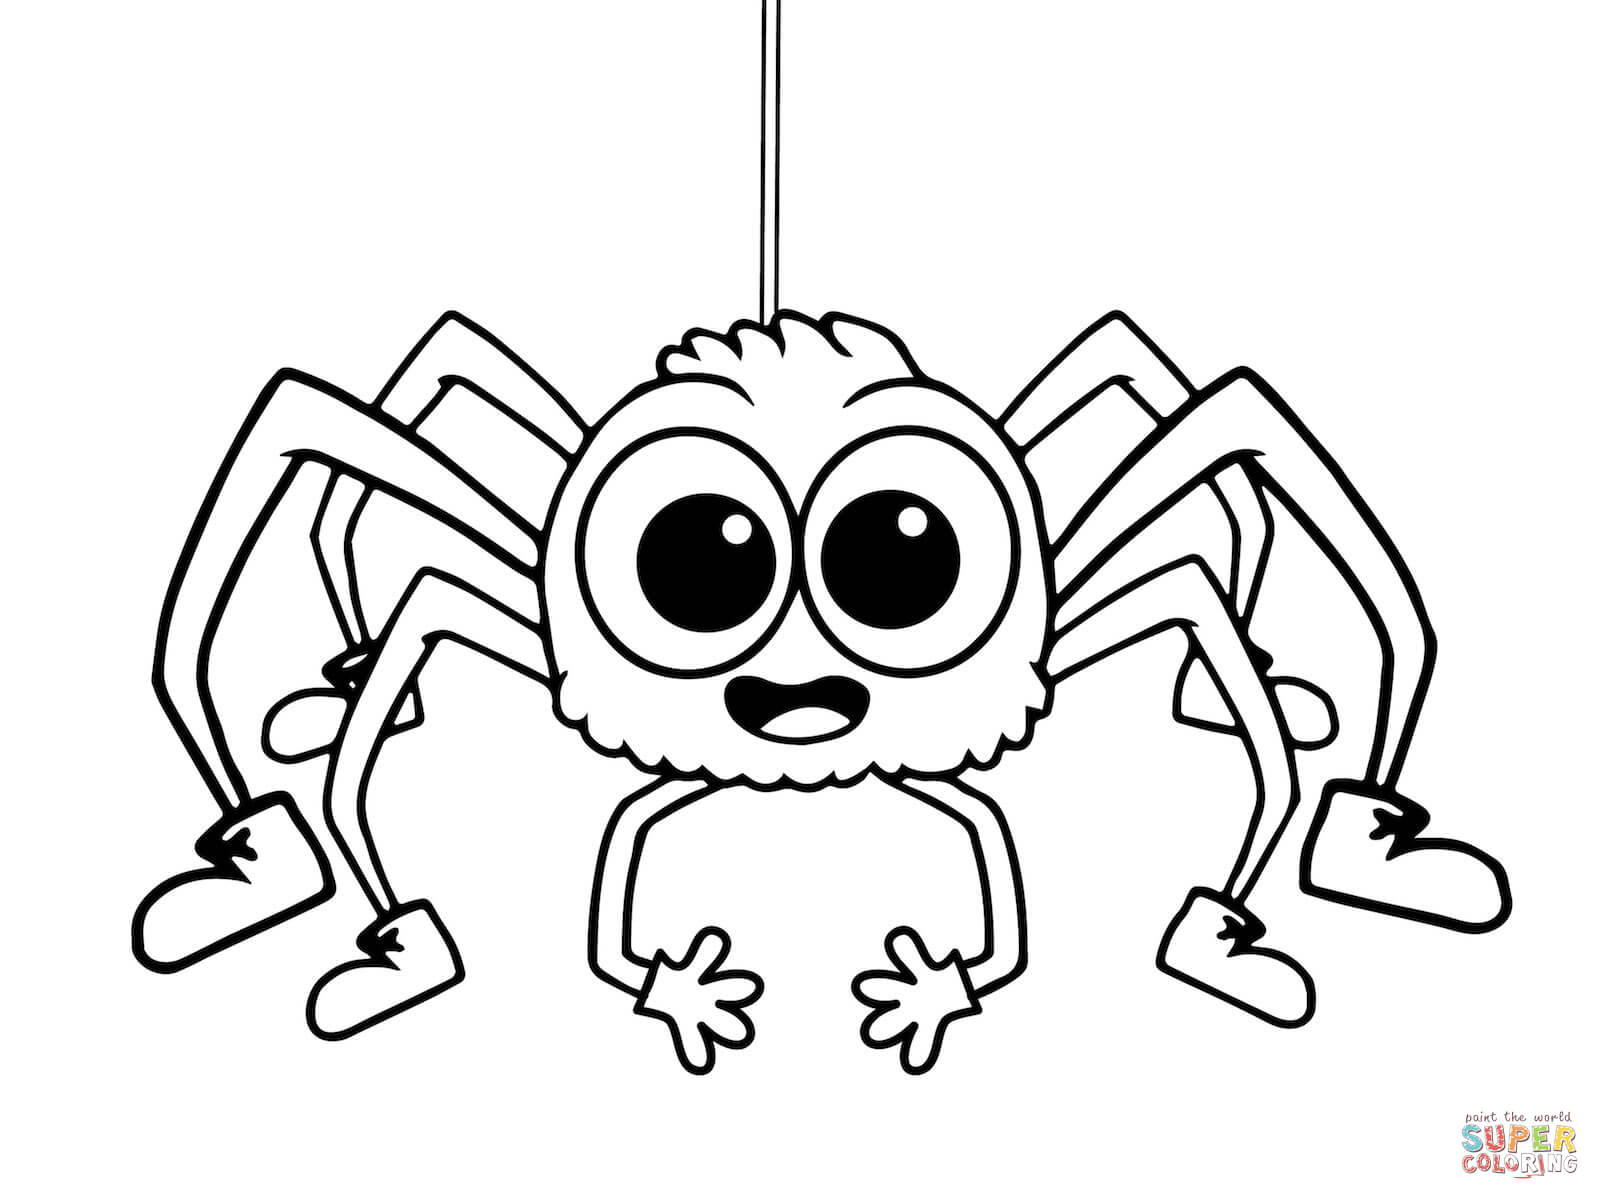 Incy wincy spider colouring pages